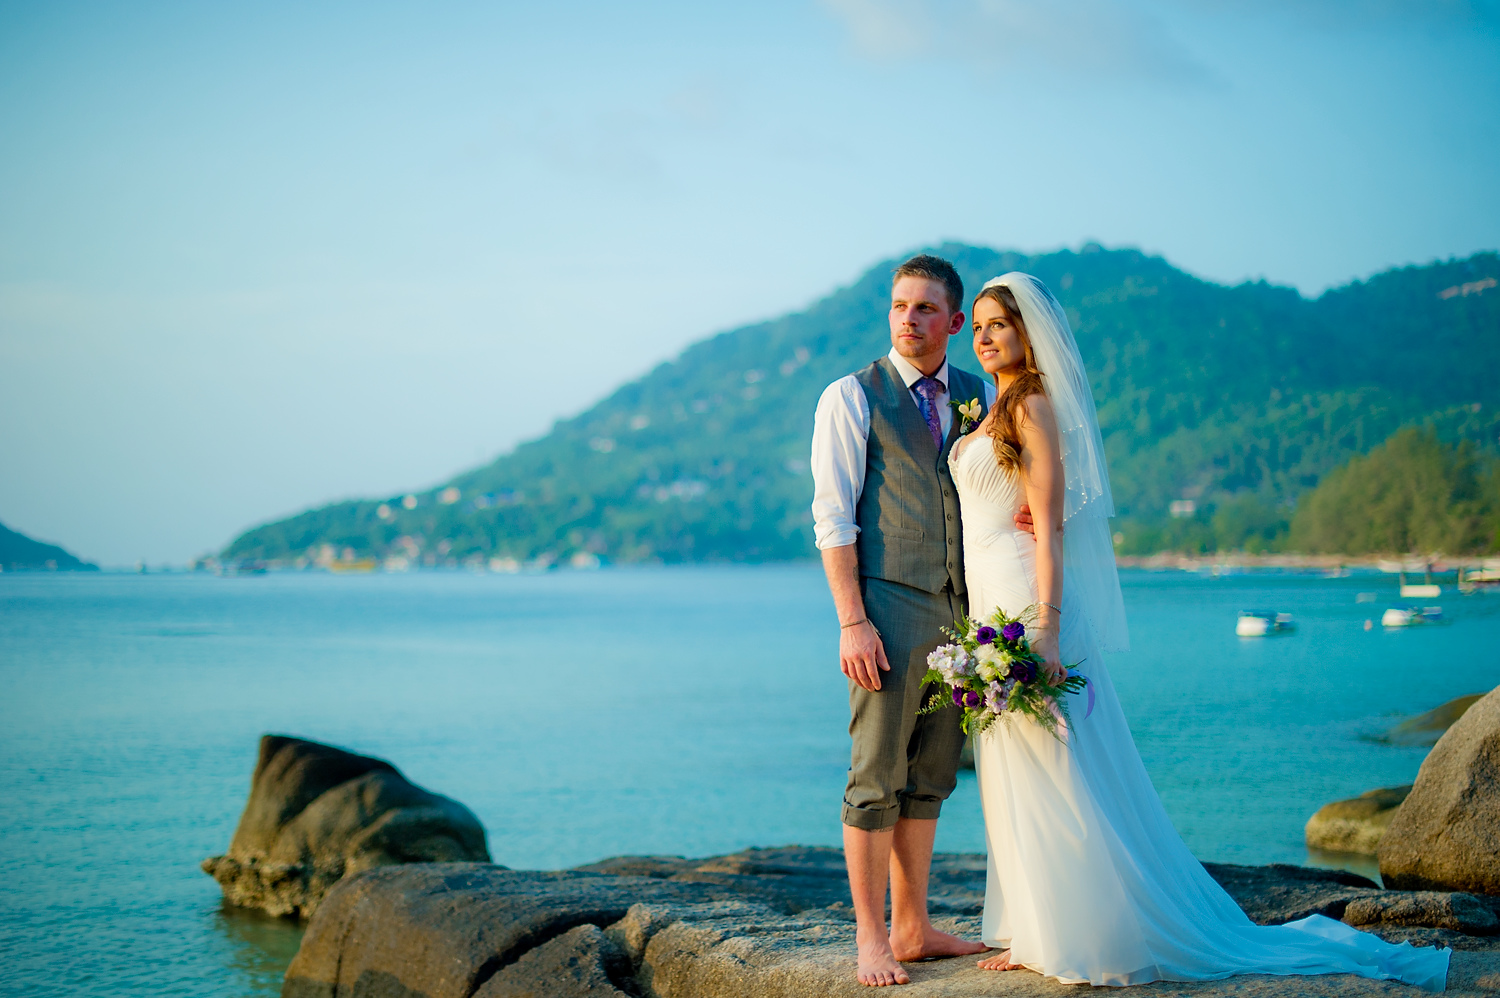 Photo of the Day: Koh Tao Beach Wedding